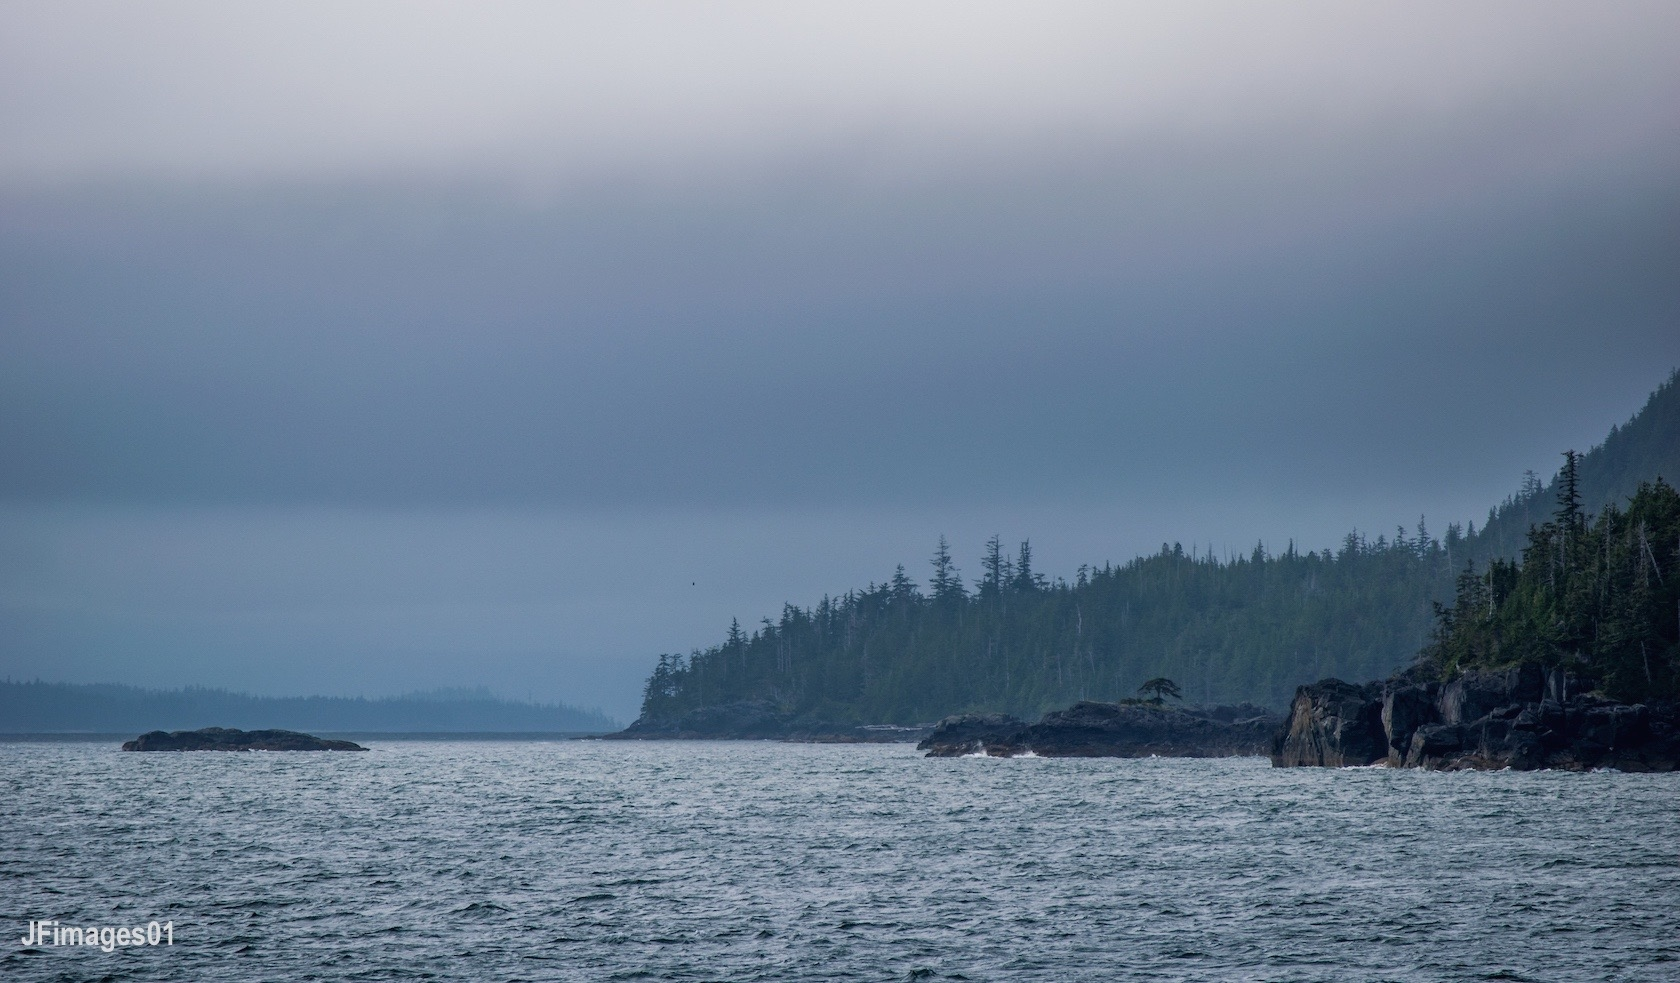 THE FERRY RIDE FROM KETCHIKAN TO HOLLIS IS A MAGIC WAY TO ARRIVE AT PRINCE OF WALES ISLAND. LOOK FOR PORPOISES, WHALES, AND SEA BIRDS ALONG THE WAY. IMAGE: THANKS TO JFIMAGES01.